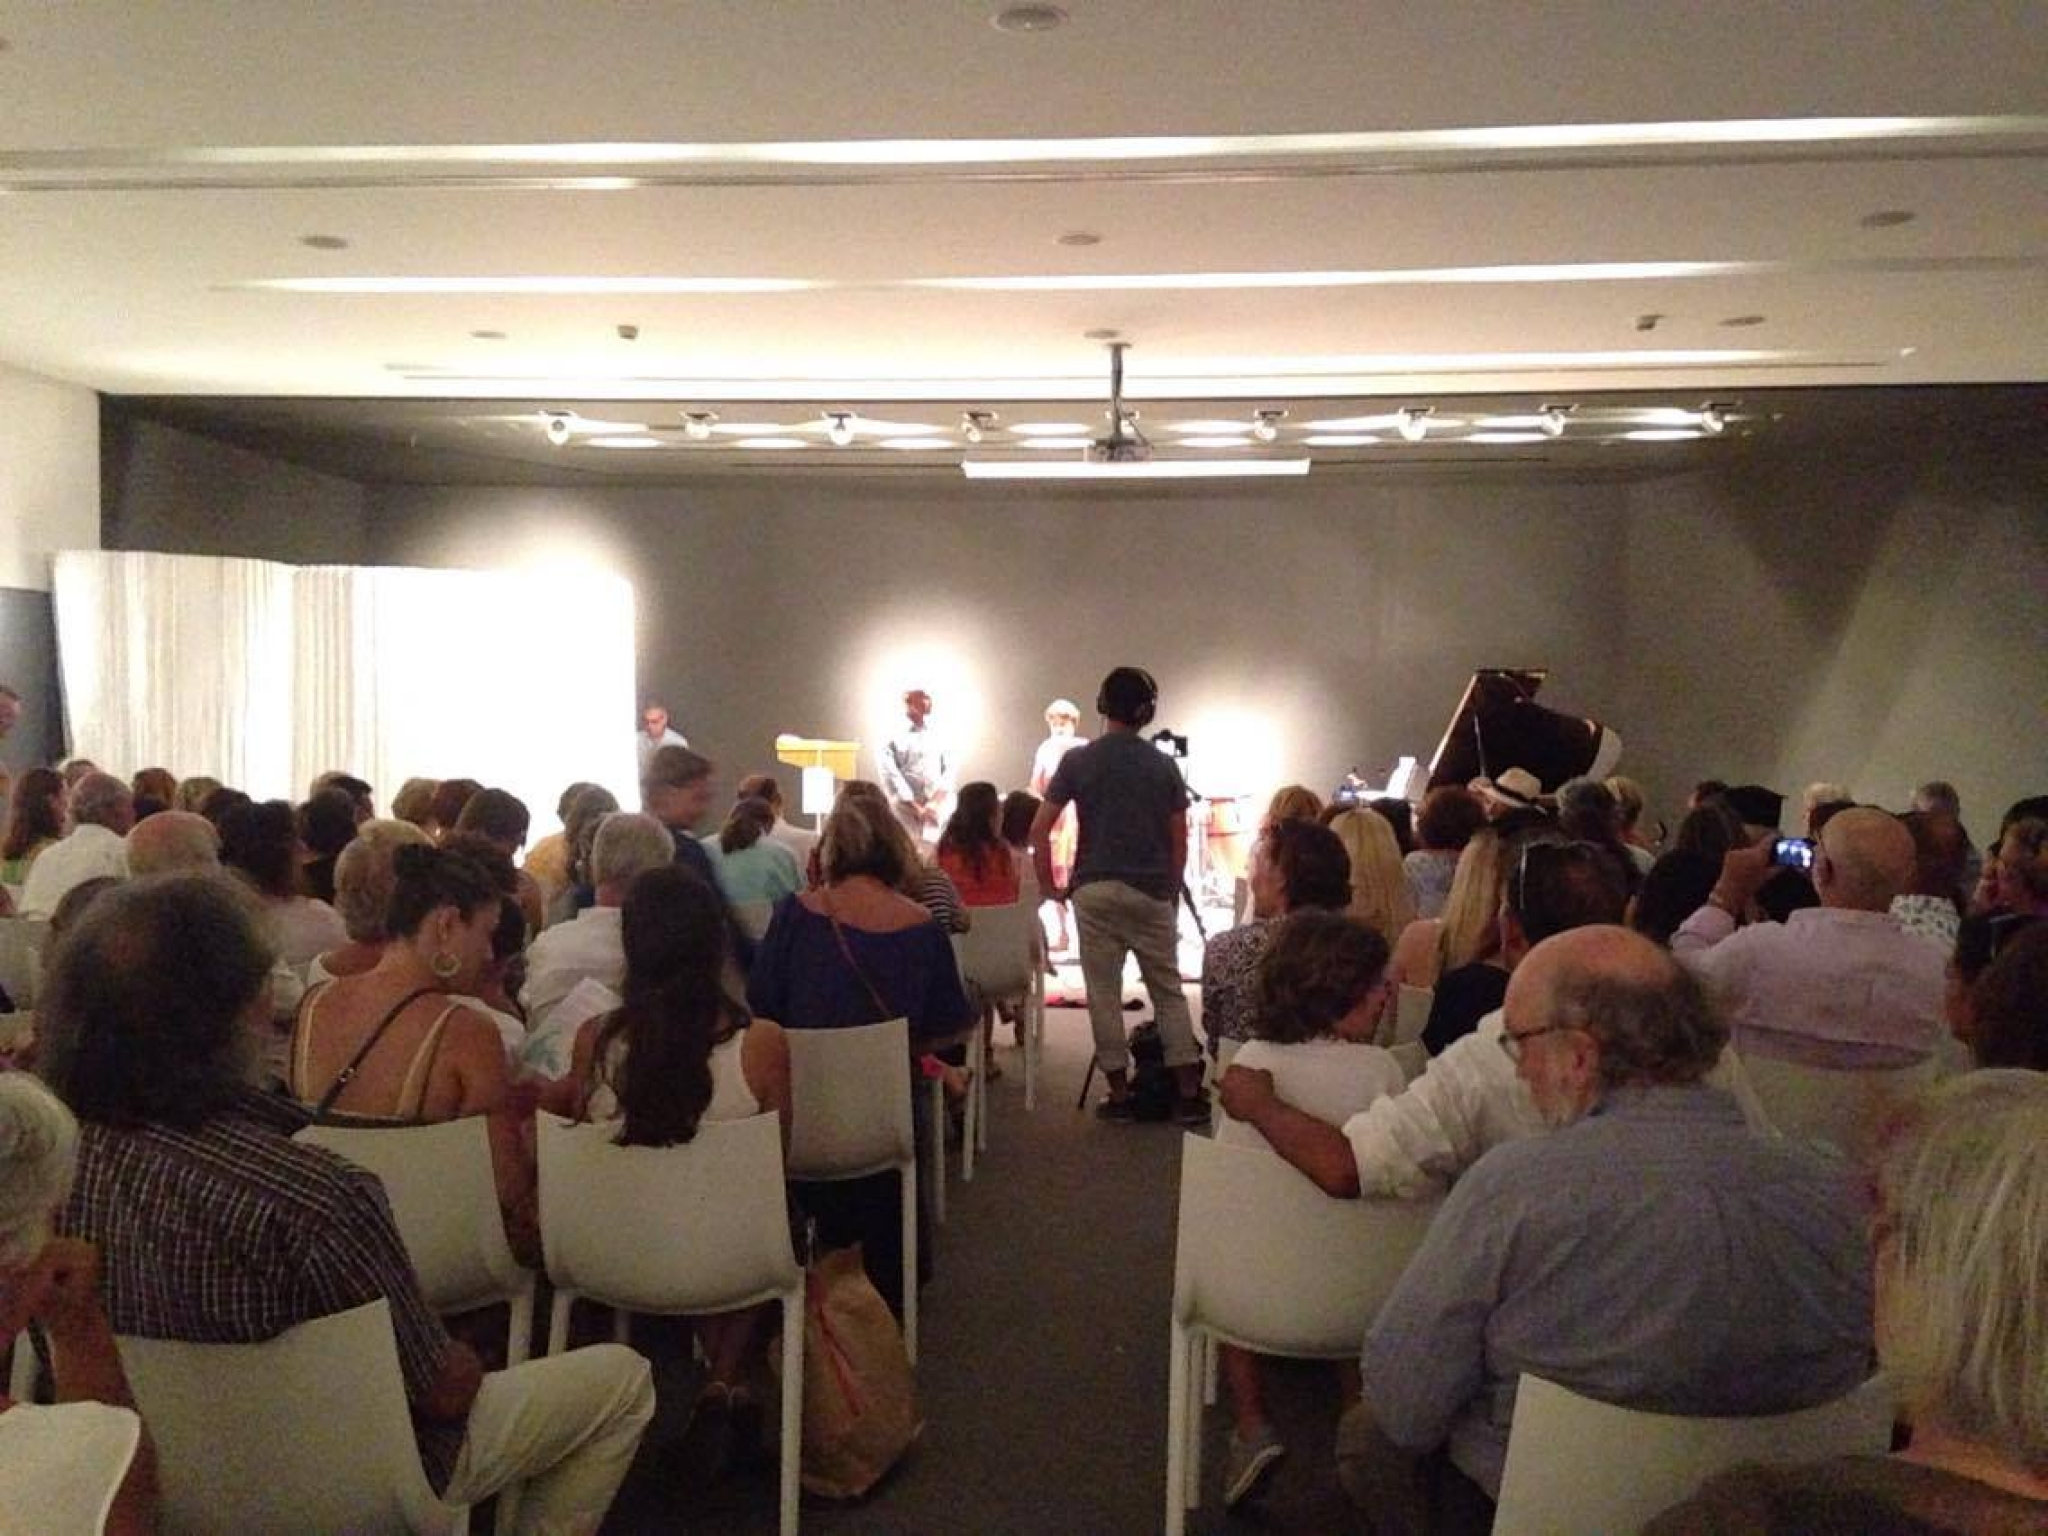 Student concert and theater performance at Patmos Aktis Suites & Spa